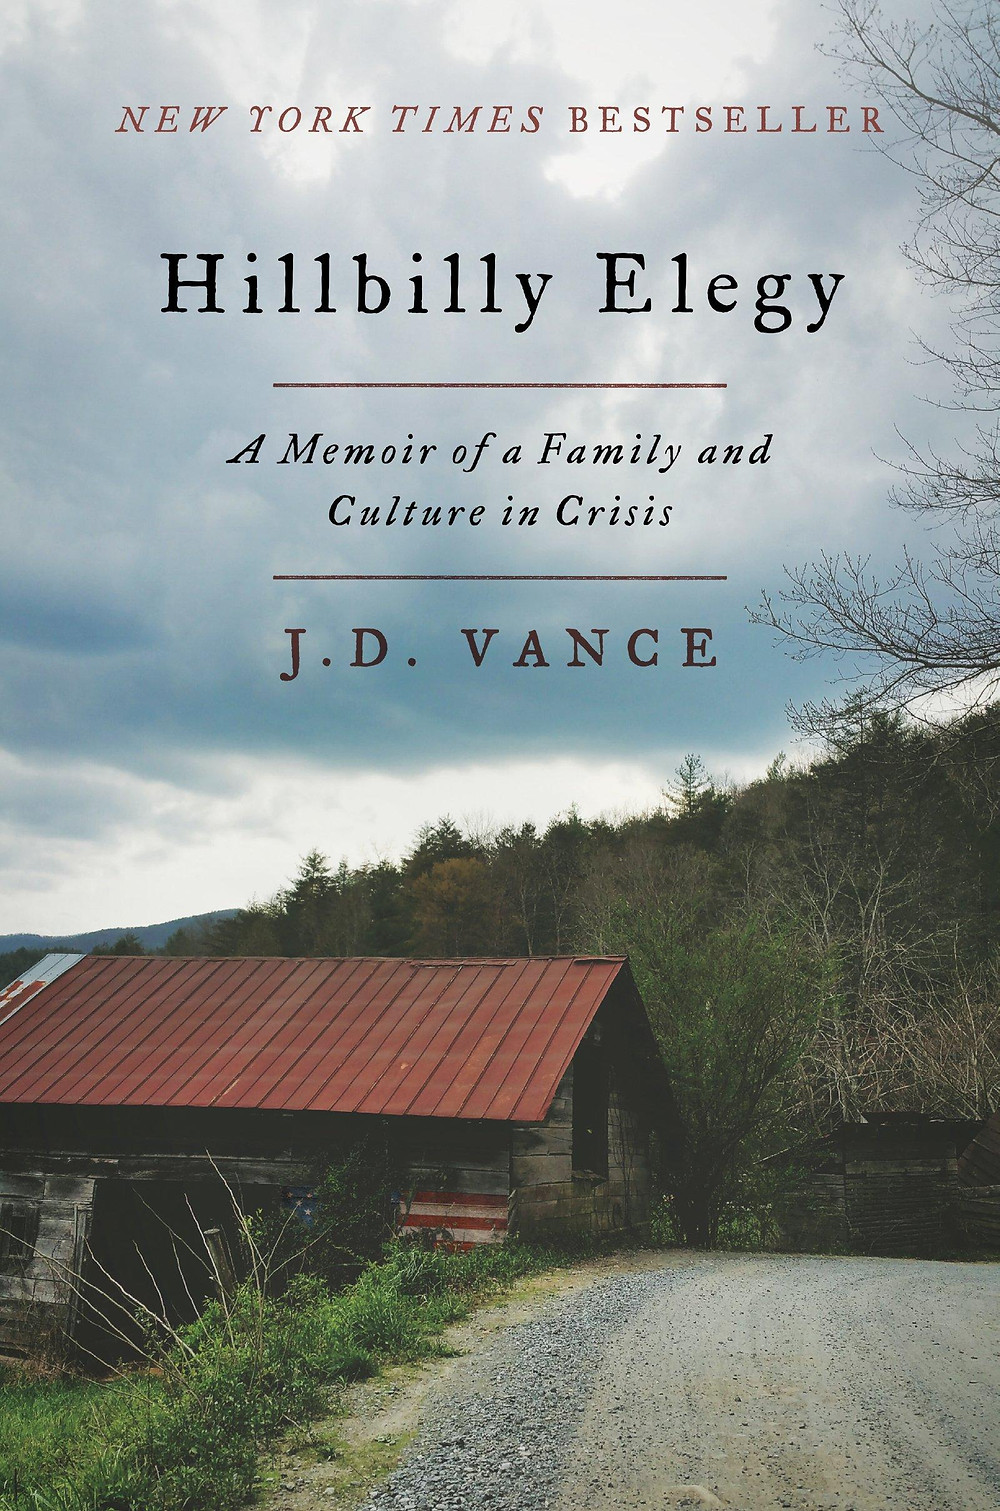 HILLBILLY ELEGY: A MEMOIR OF A FAMILY AND CULTURE IN CRISIS by J.D. Vance : the book slut book reviews